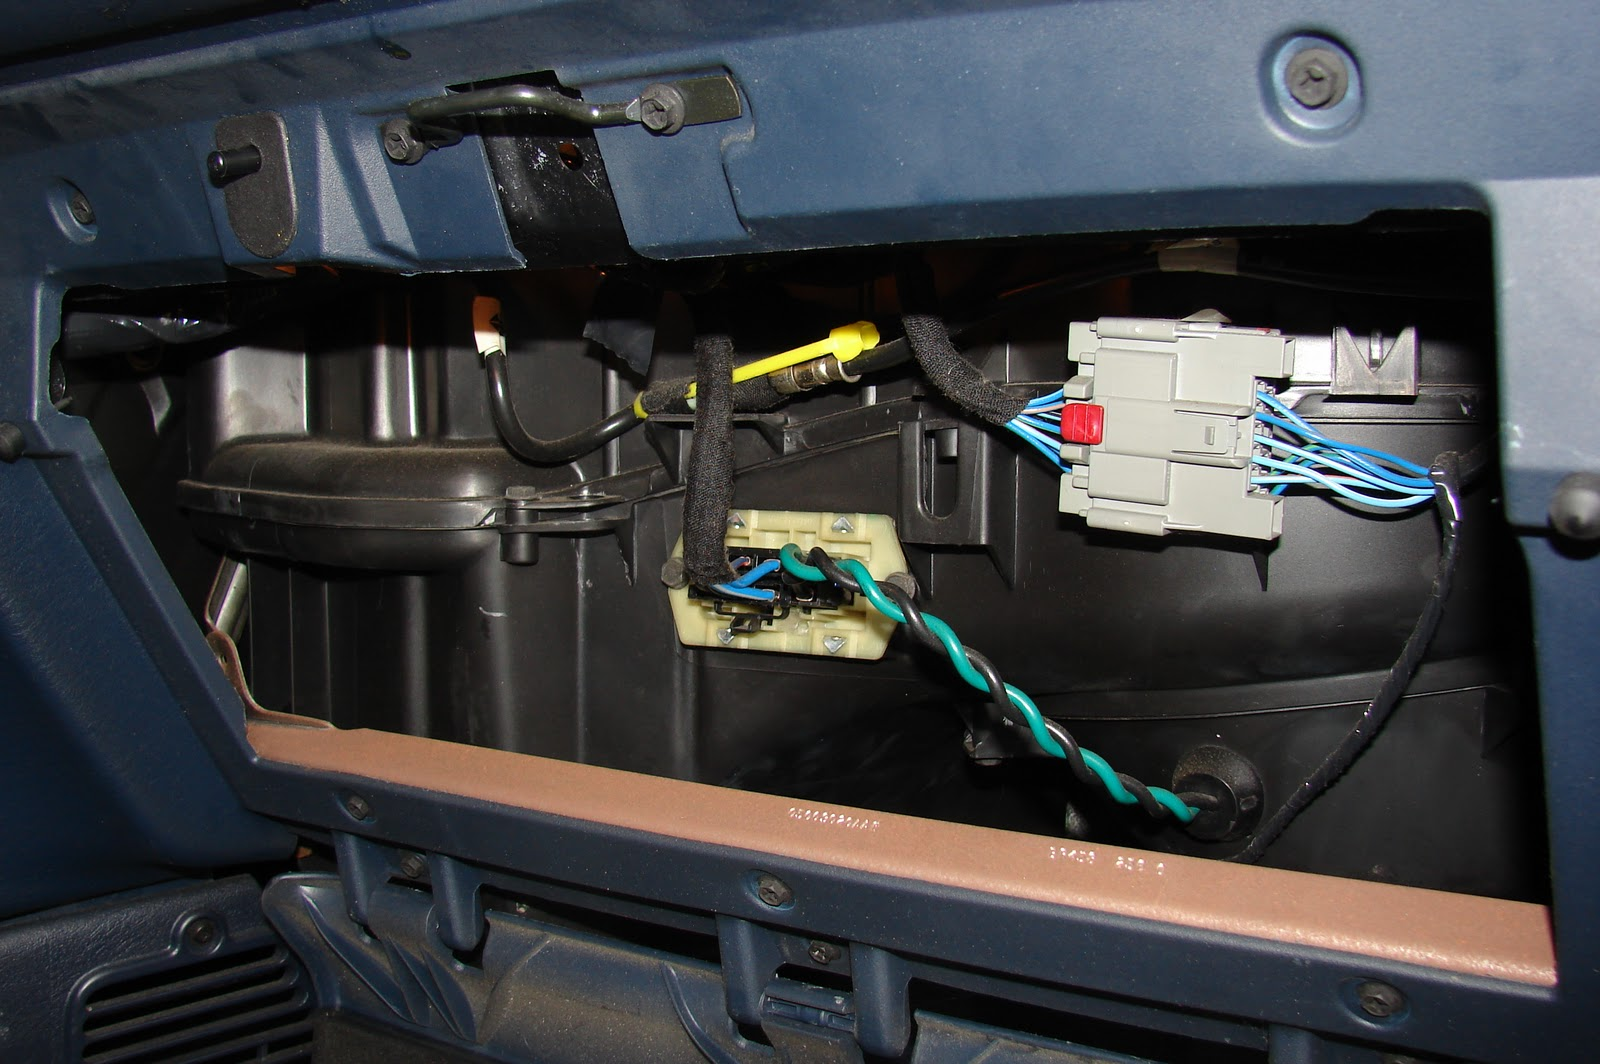 Saab 9 3 Fuse Box Location Wiring Library 2007 Volvo S40 Diagram Dsc08751 My Commentary And Technical Help Dodge Caravan Fan Only Works On 36 Images